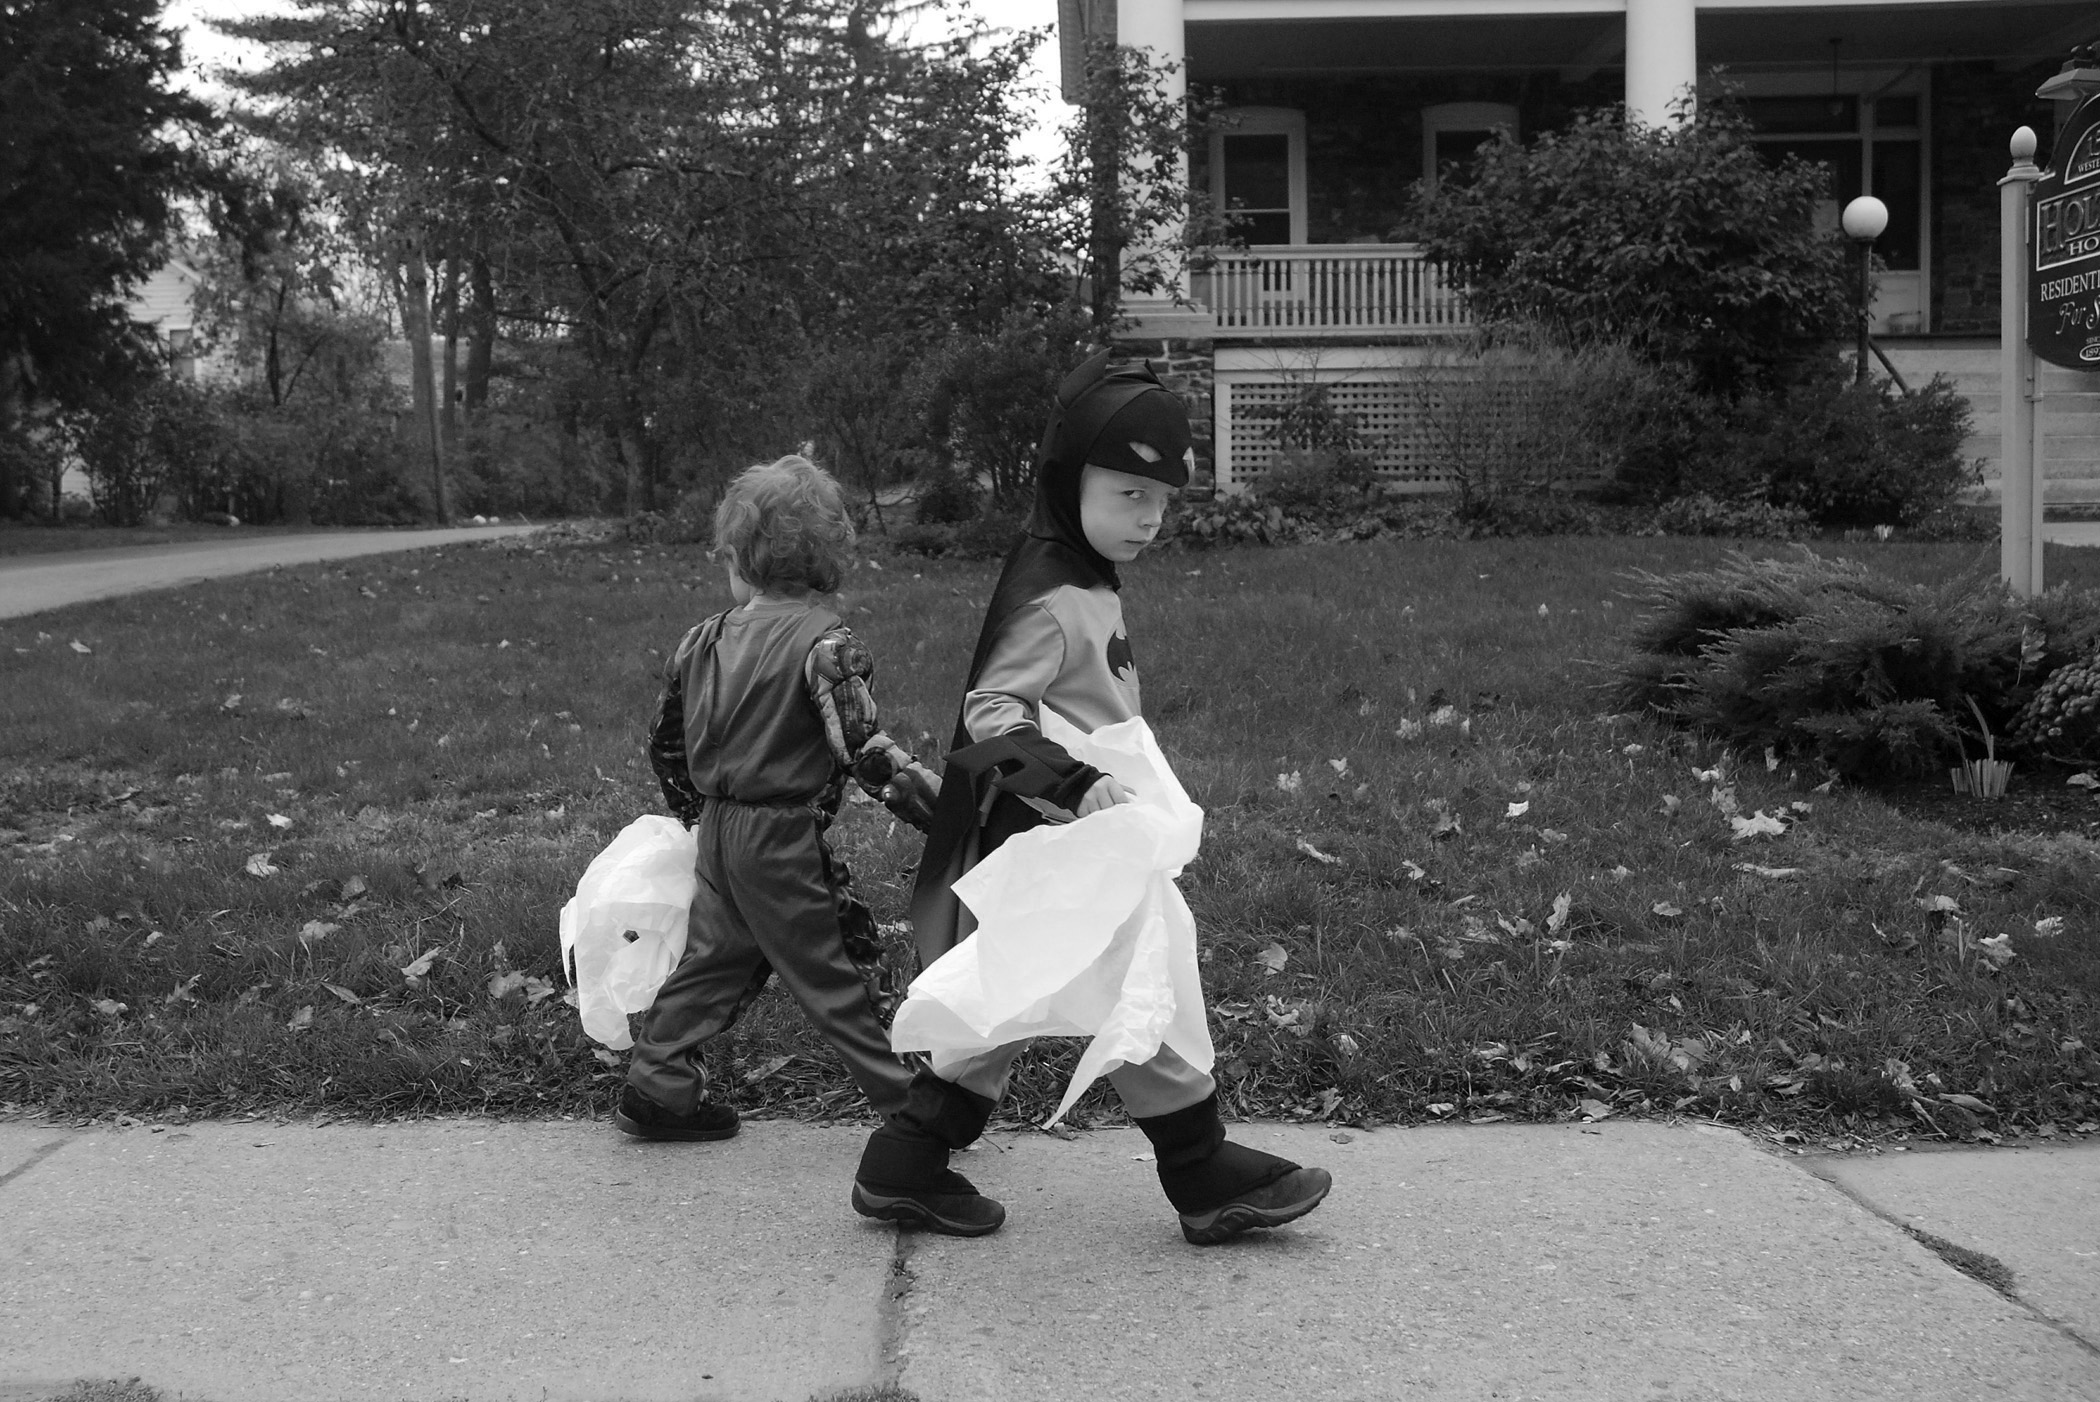 A child dressed as Batman gives the superhero's signature stare while walking with classmates from Neighborhood Schoolhouse in Brattleboro, Vt. after spending time visiting a nursing home on Halloween.